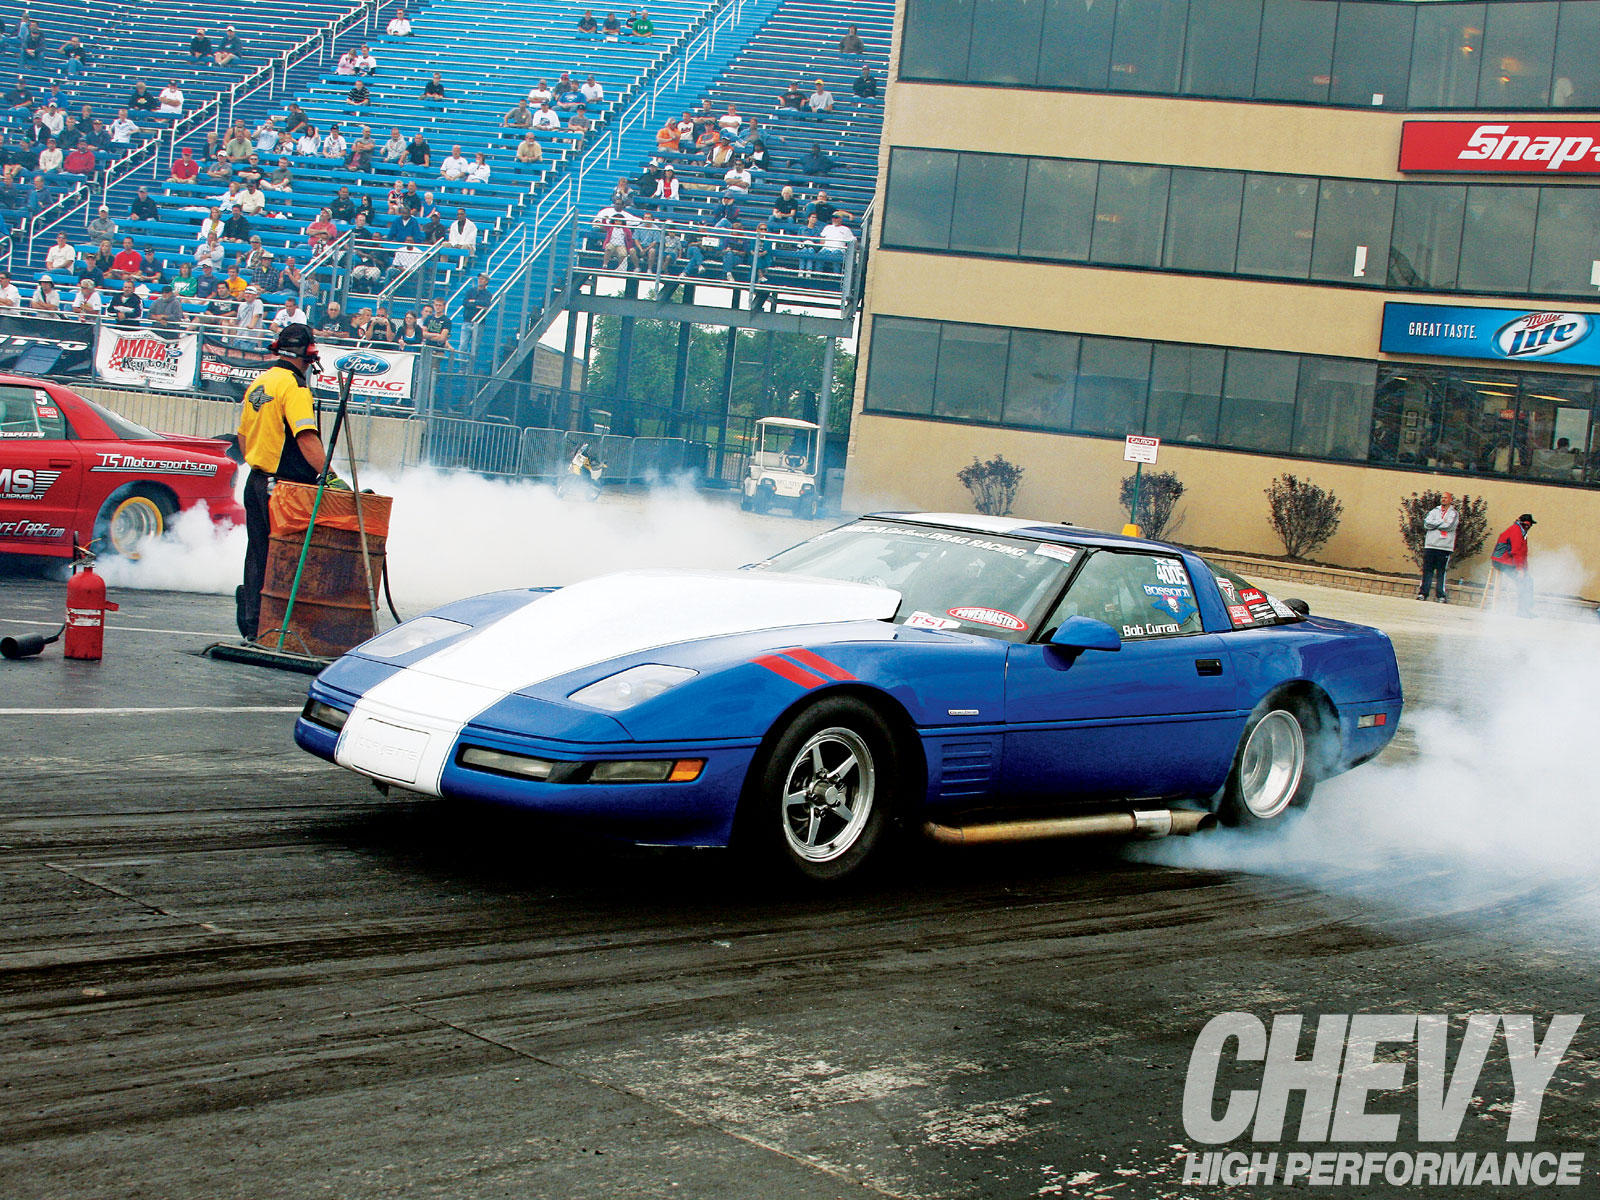 0912chp_01_z Nmca_vortech_xtreme_street_highlights 1996_chevrolet_corvette_grand_sport